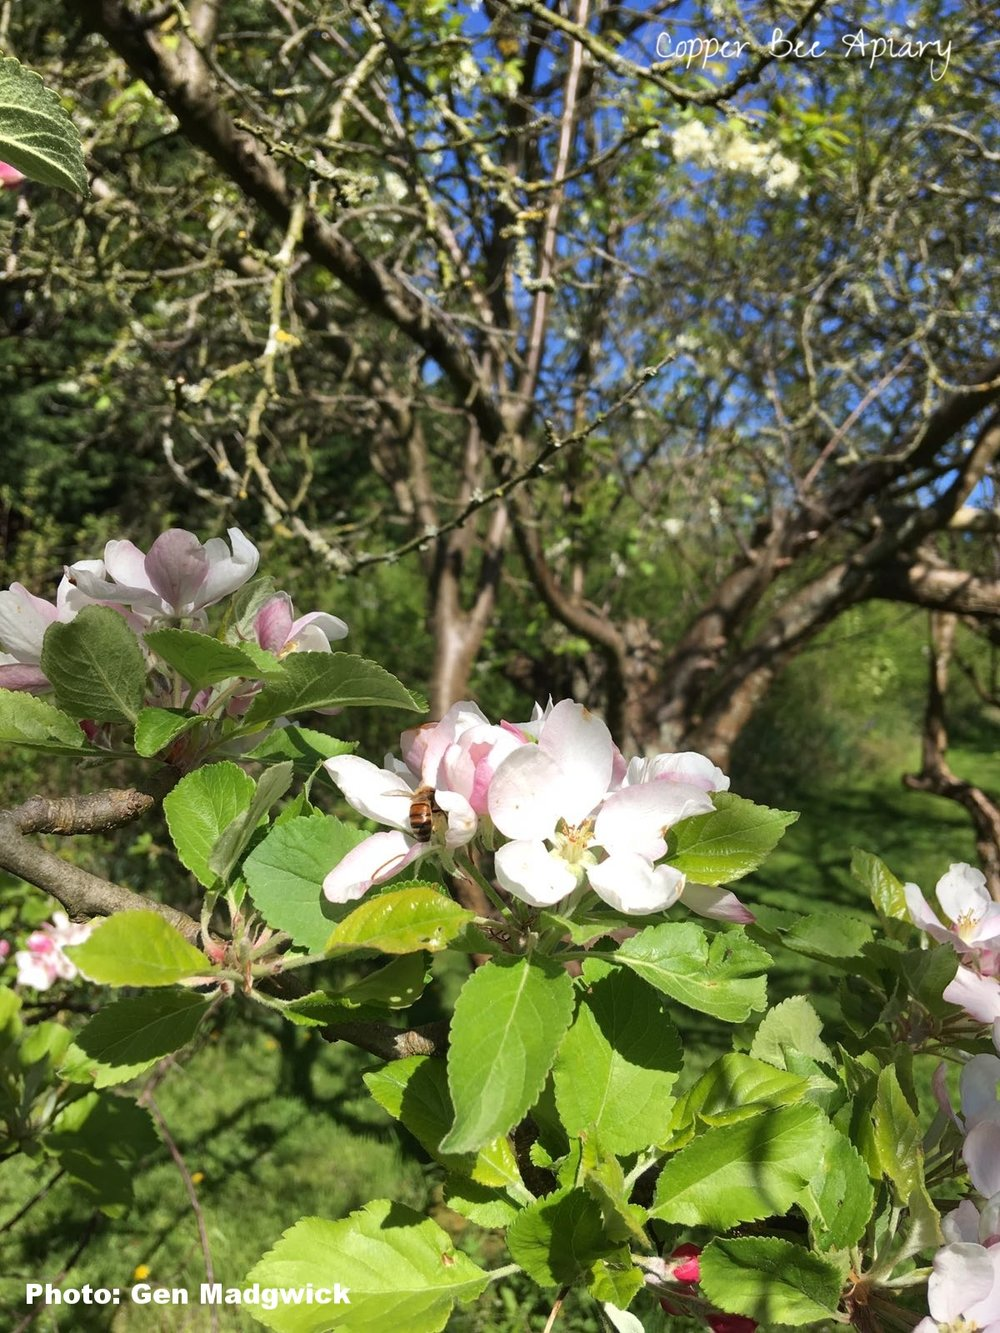 Forager on apple blossom